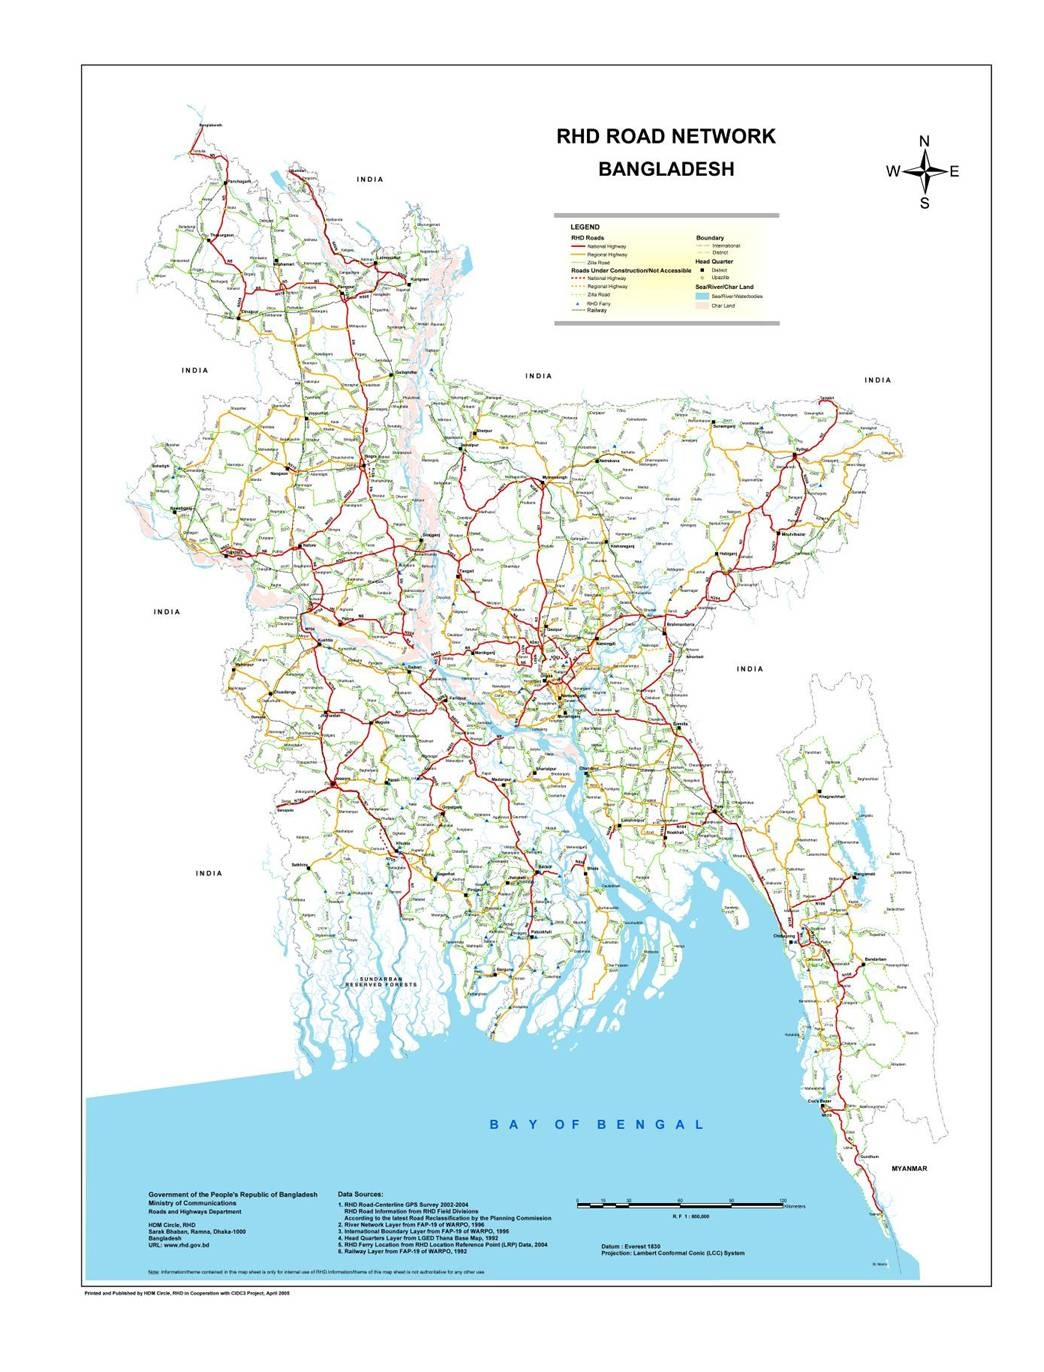 bangladesh roads and transport statistics Transport sector in bangladesh and the challenges going forward bangladesh transport policy note according to police statistics, road traffic crashes cause.